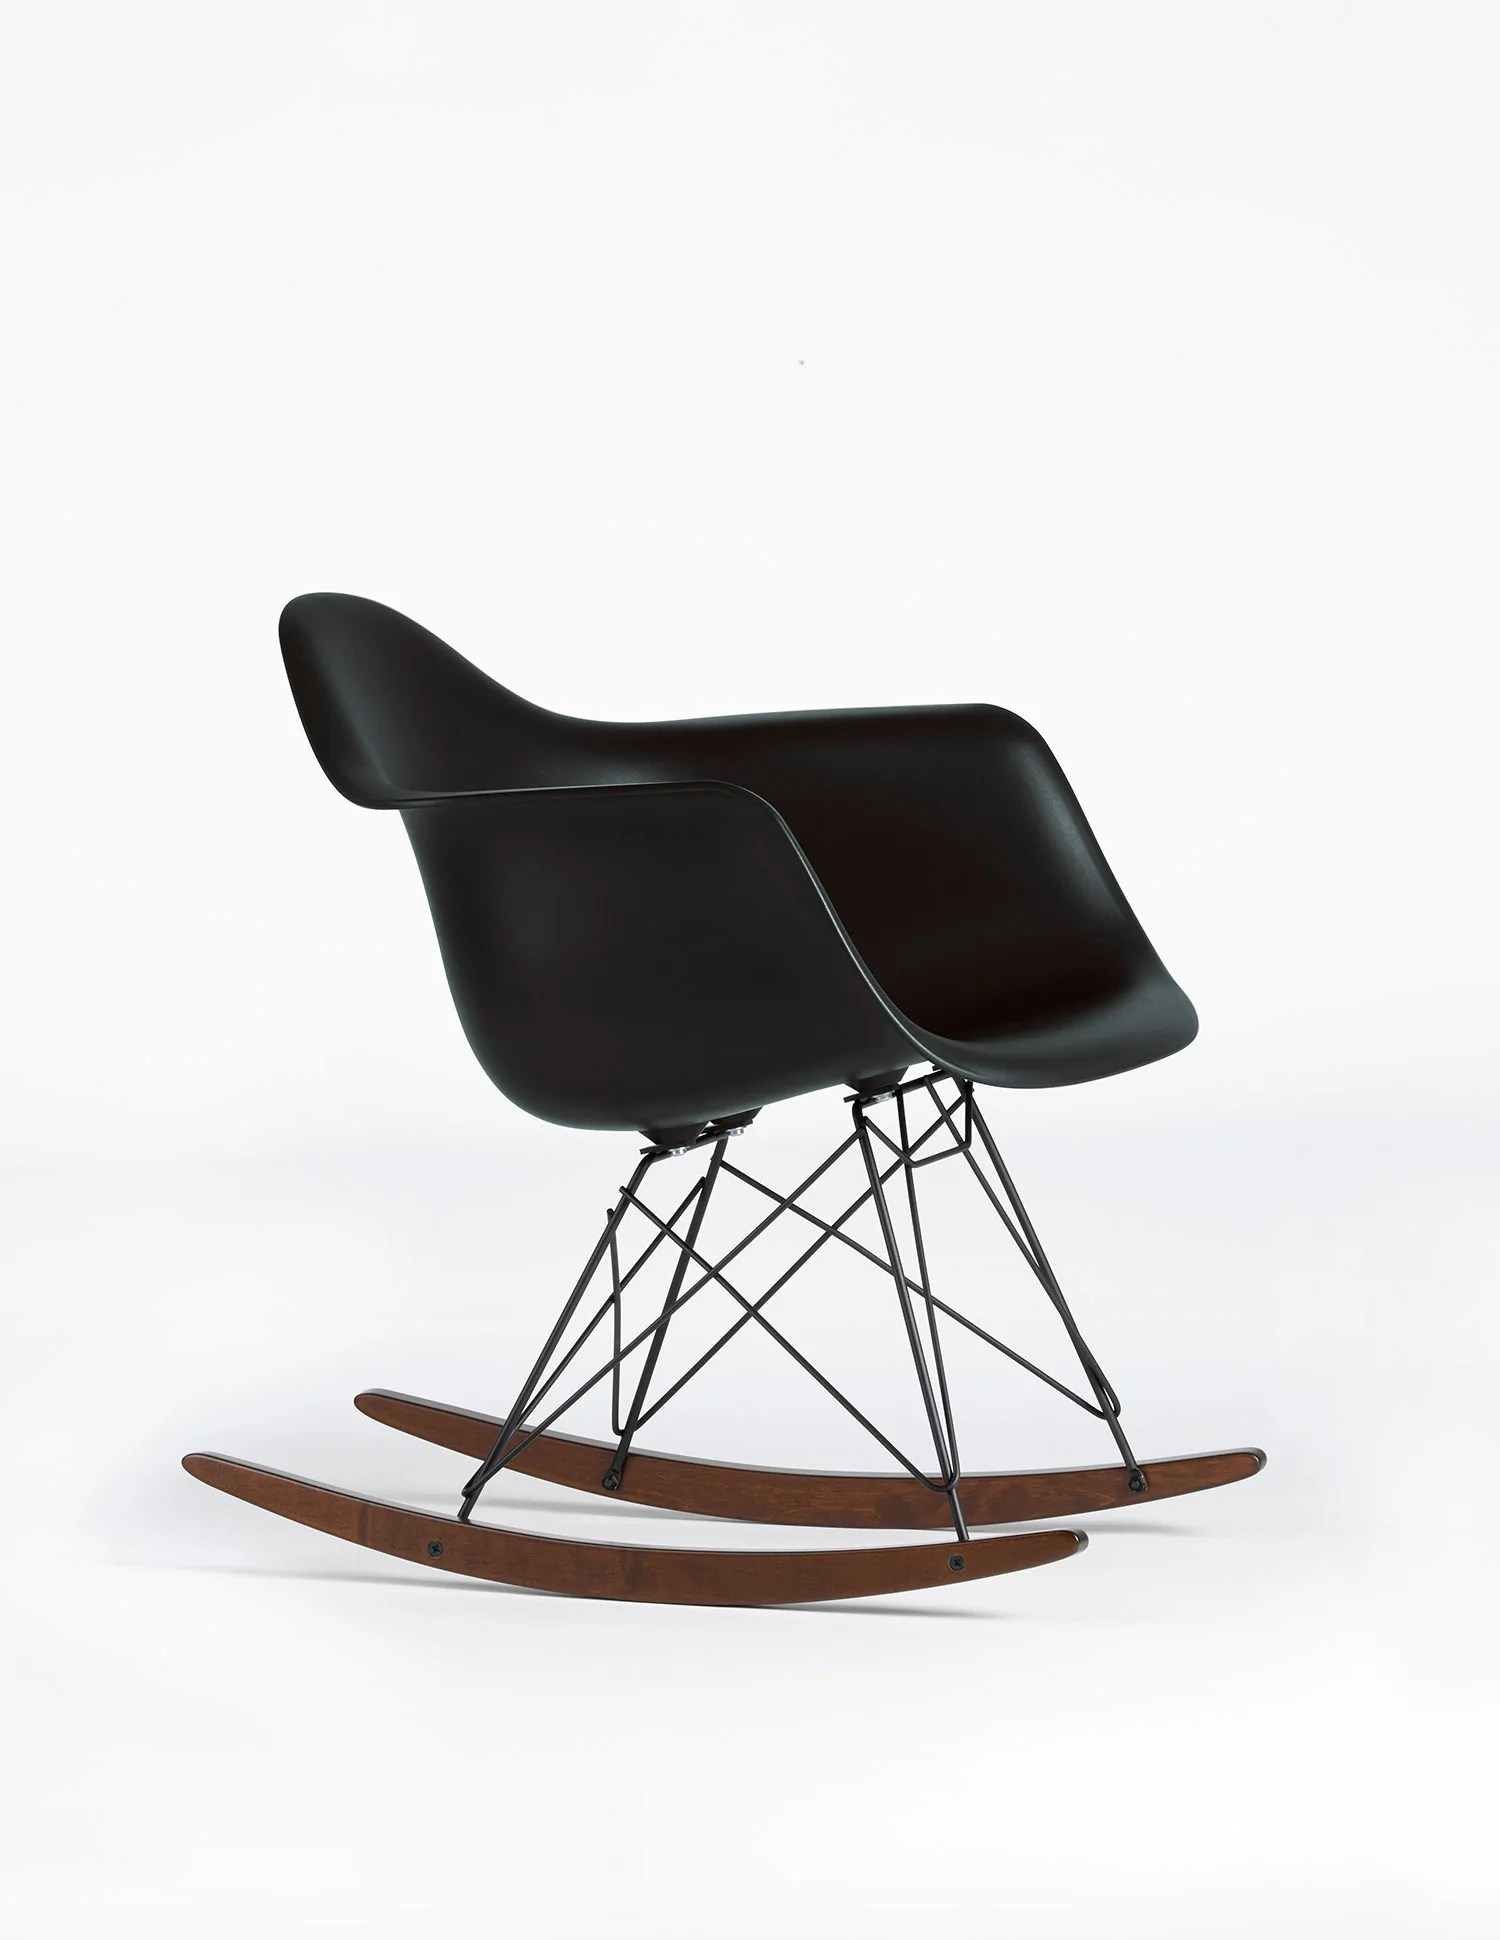 Eames Rar Eames Rar Rocking Chair Black Version